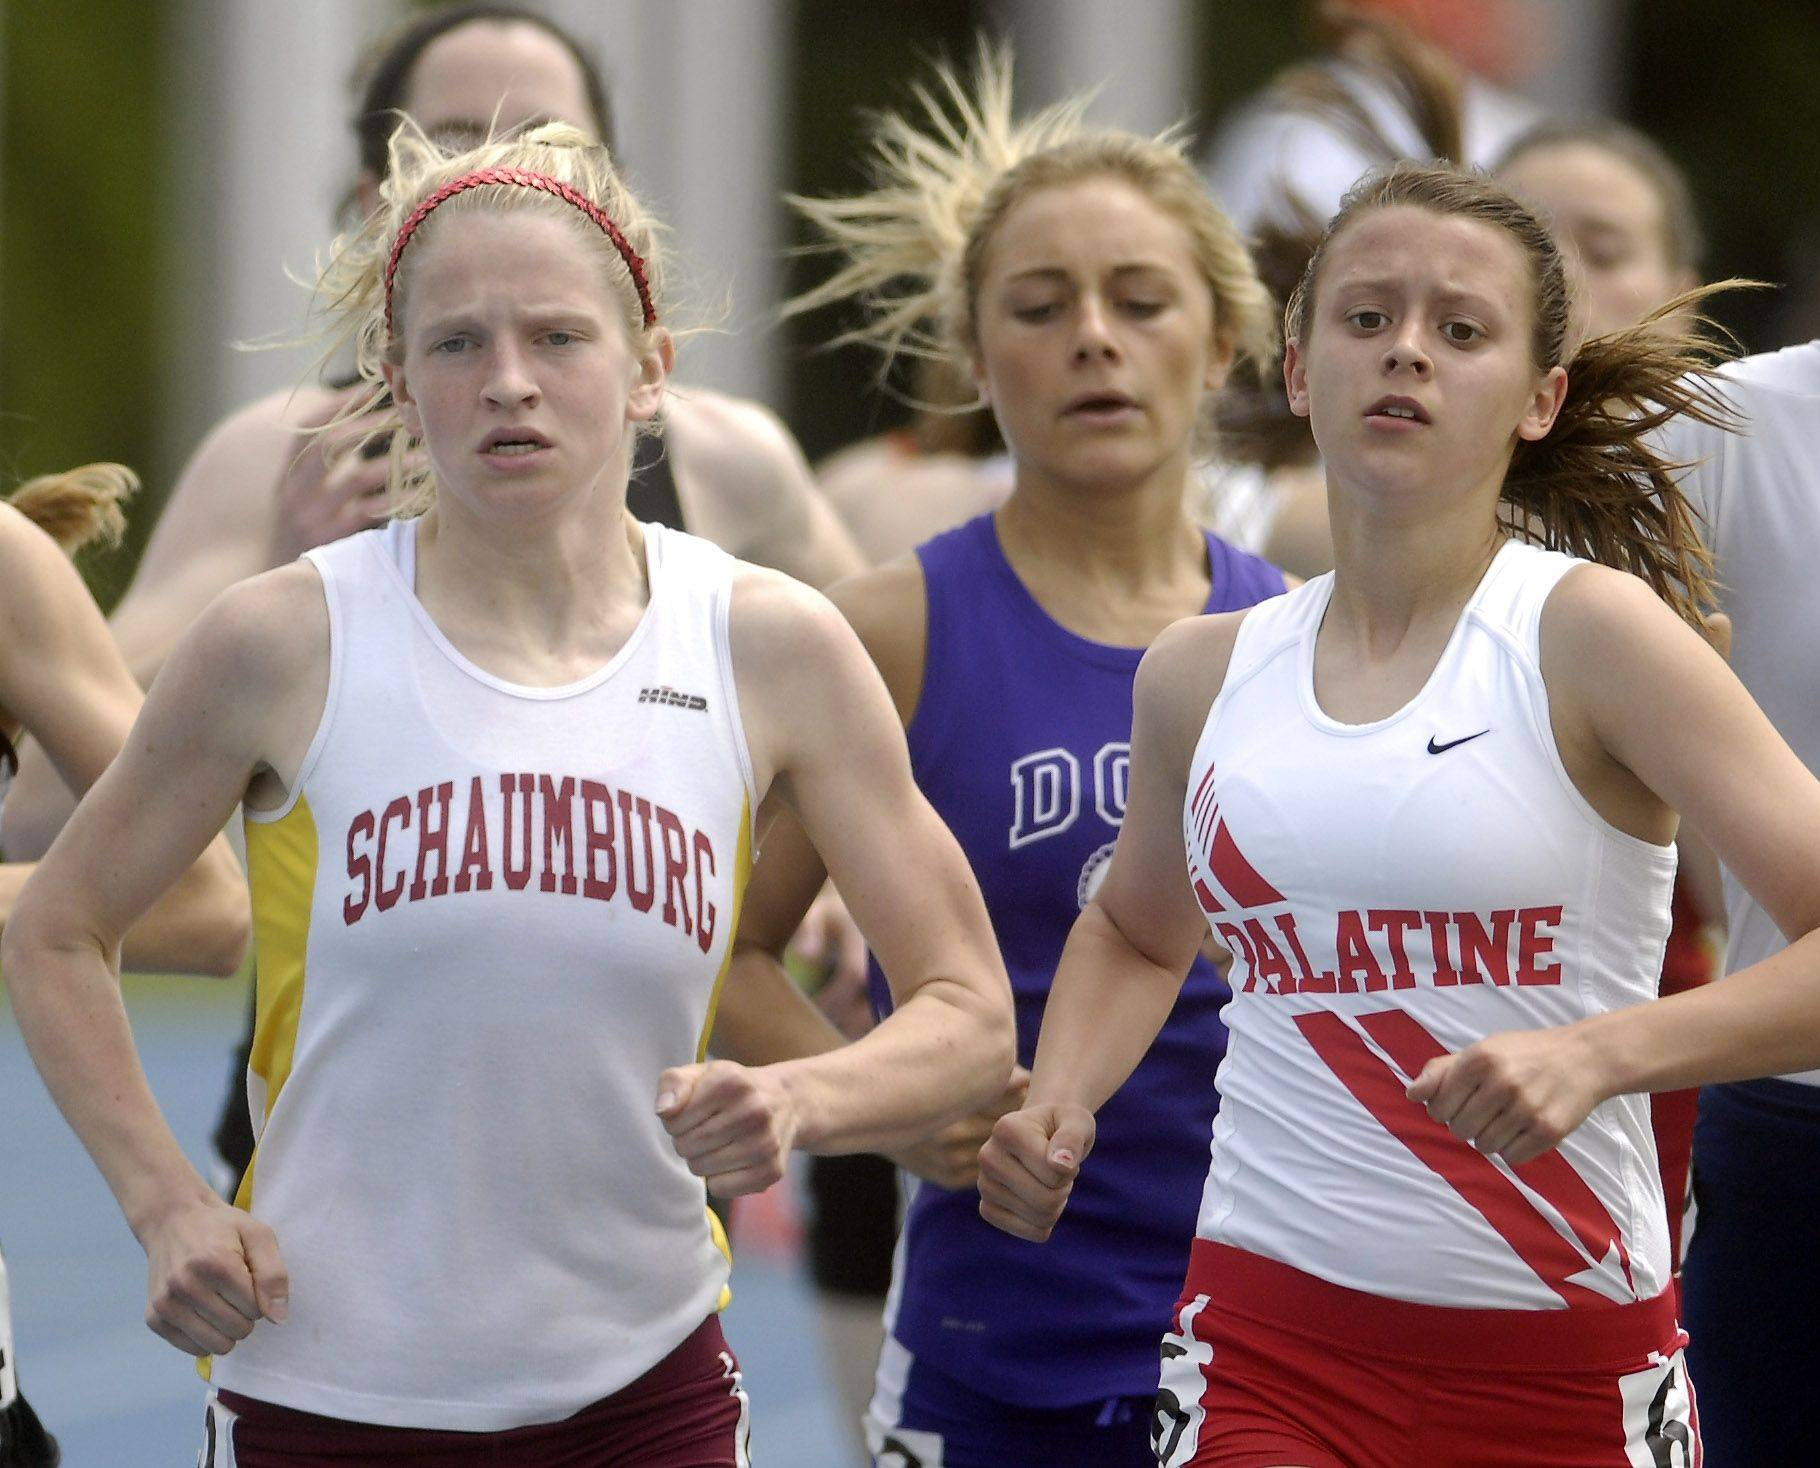 Schaumburg's Britten Petrey and Palatine's Tess Wasowicz during Friday's preliminaries of the IHSA girls state track finals in Charleston.